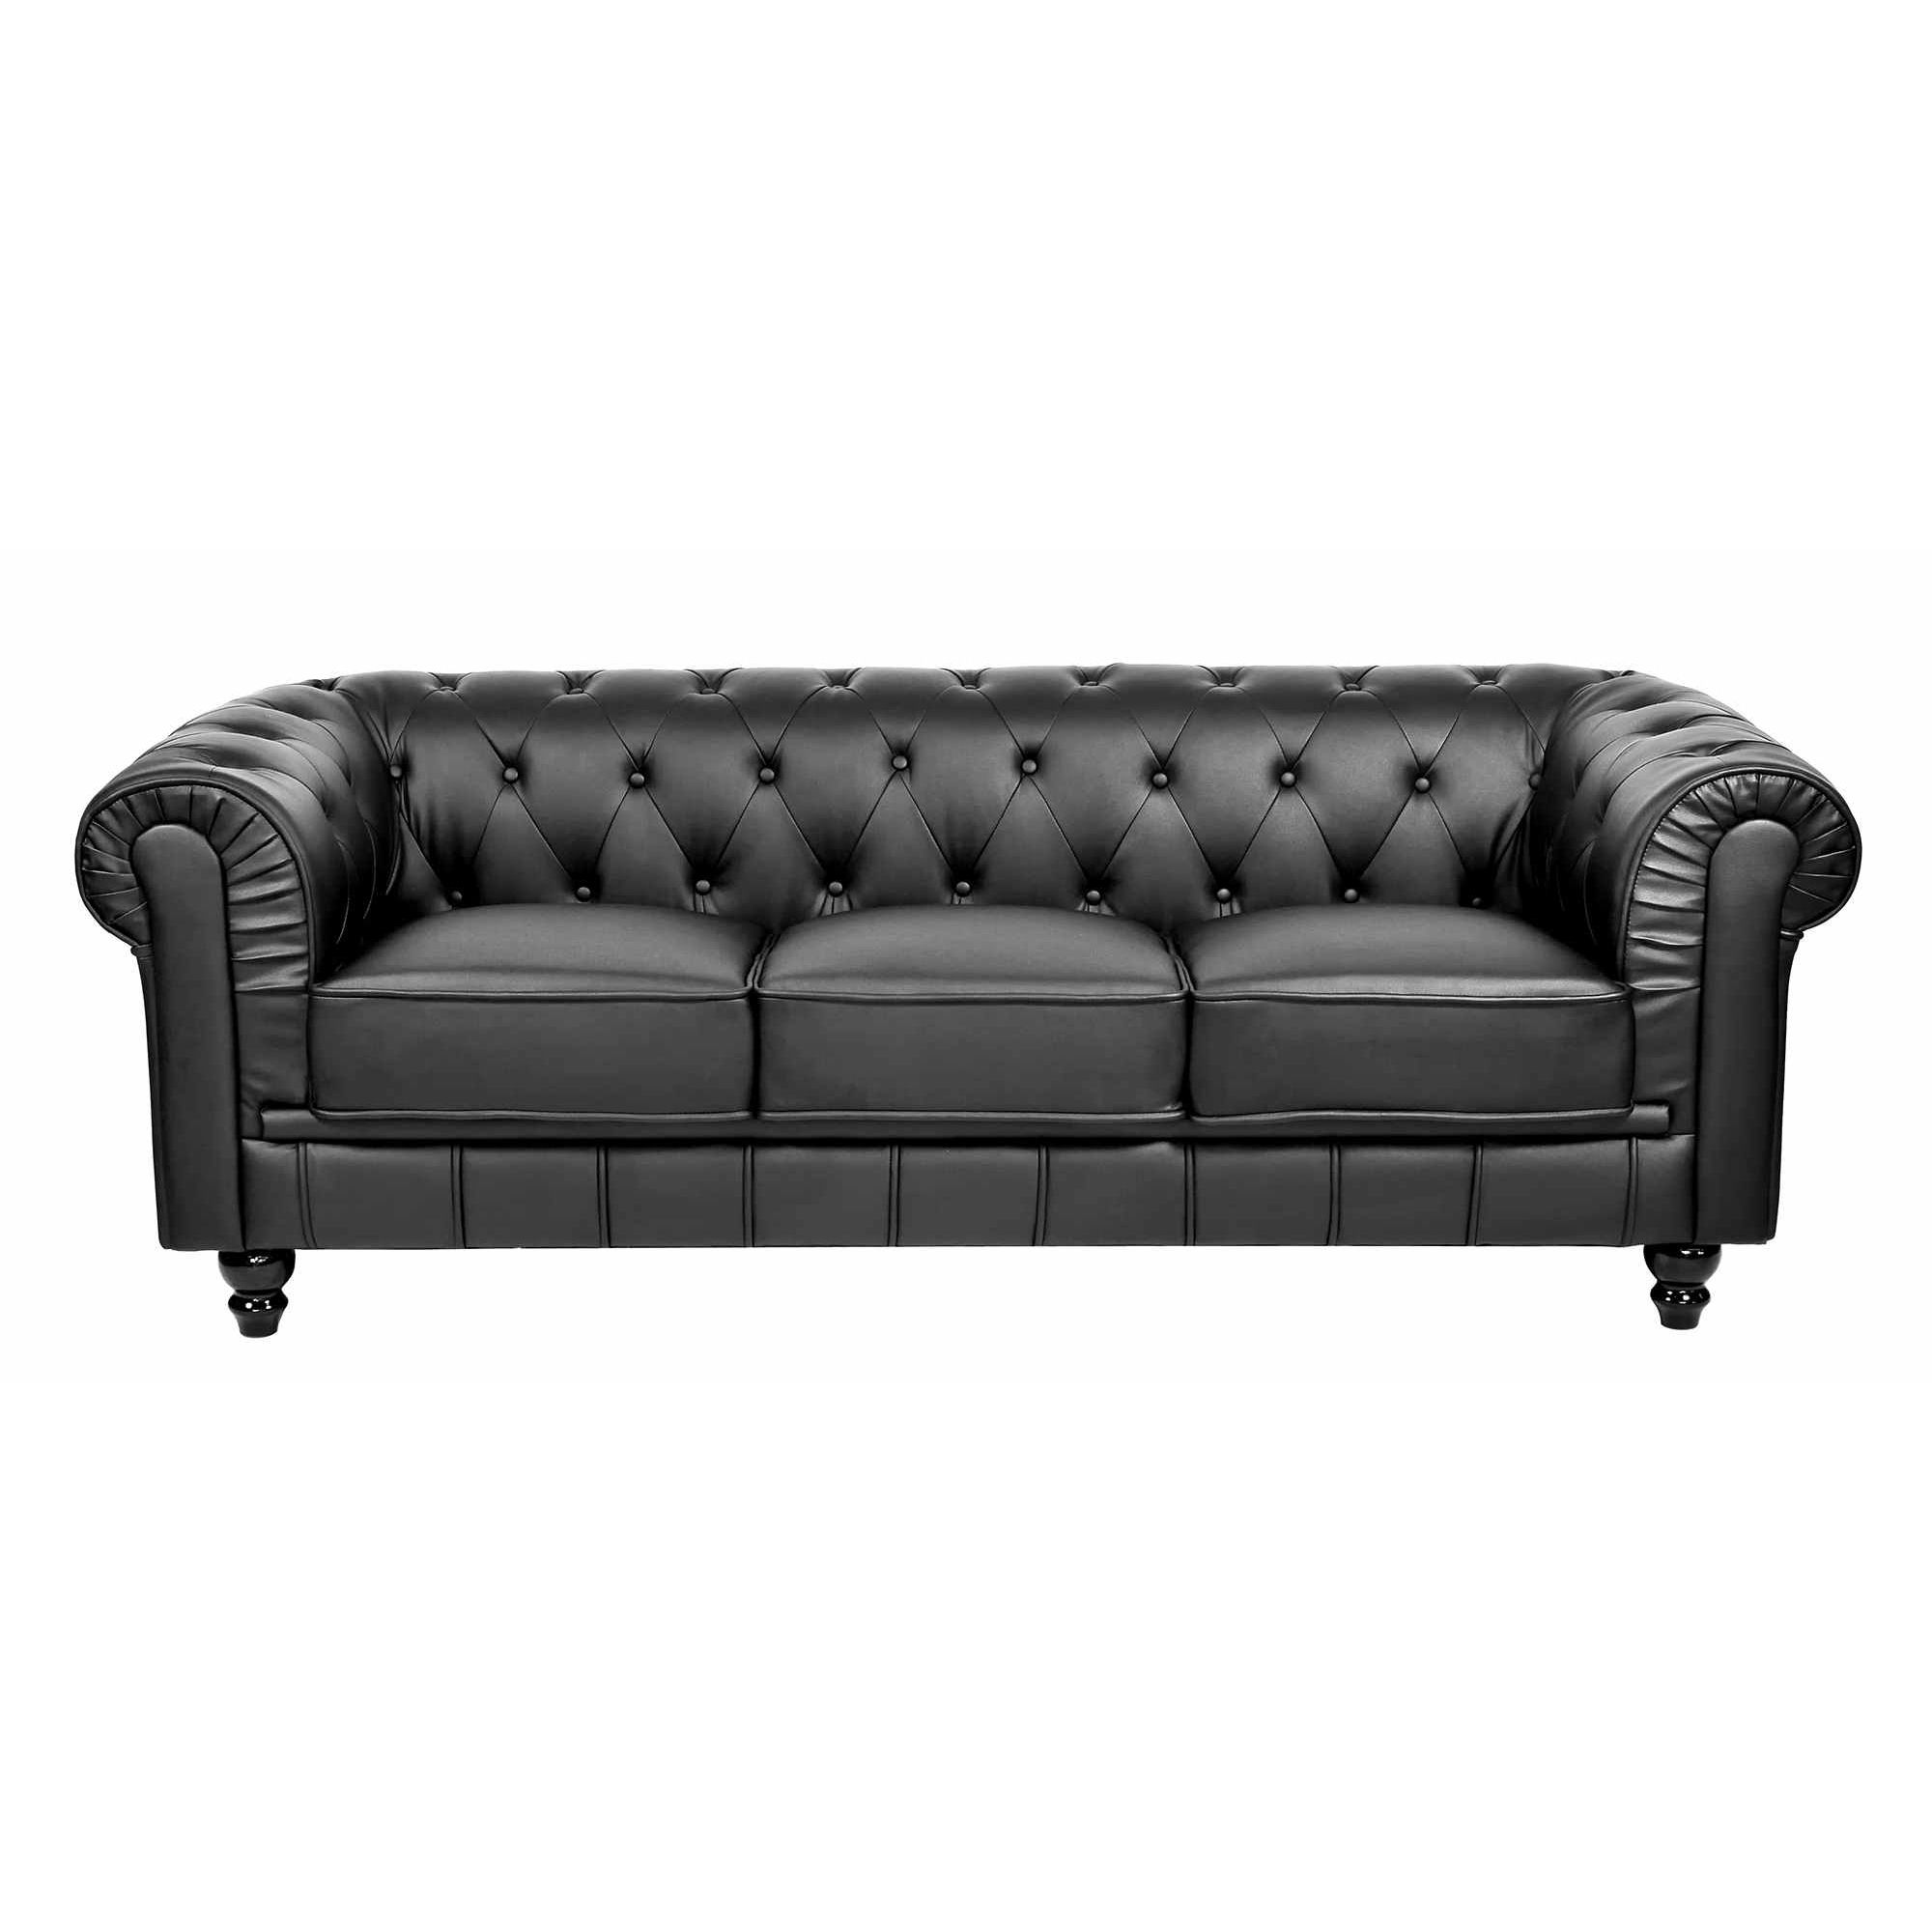 Deco in paris ensemble canape 3 2 1 places noir - Canape chesterfield but ...